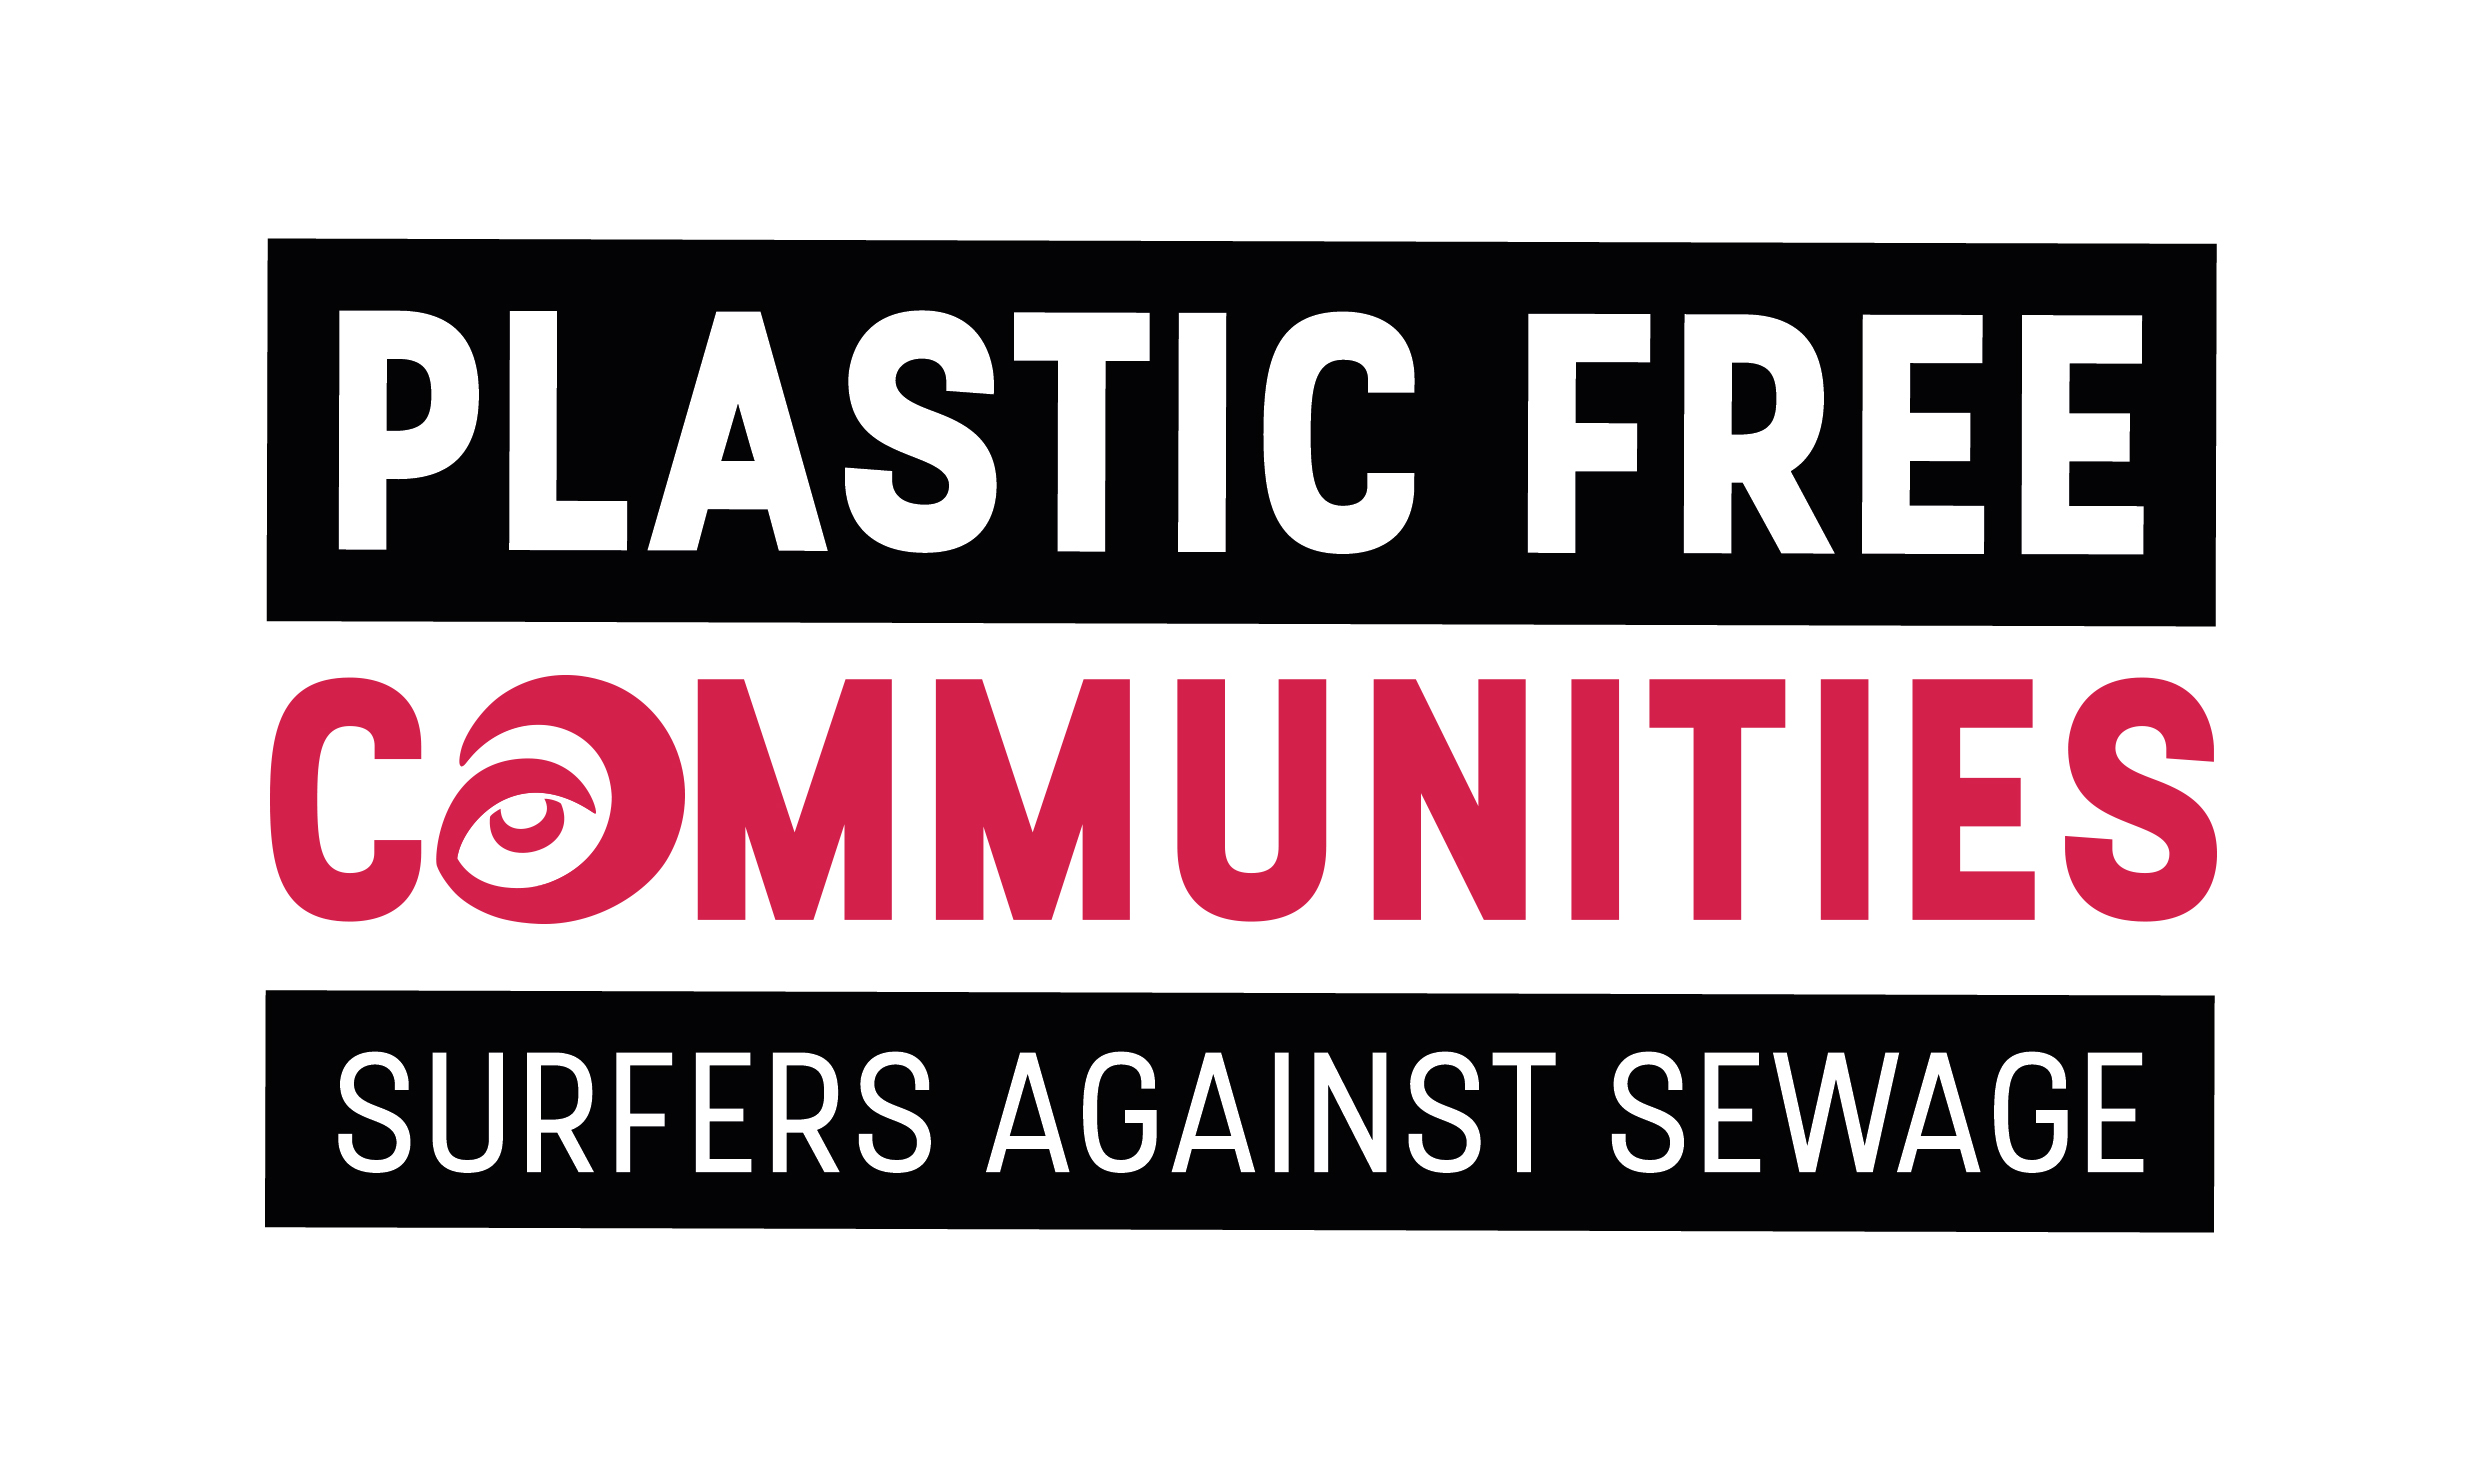 Plastic Free Communities with Surfers Against Sewage